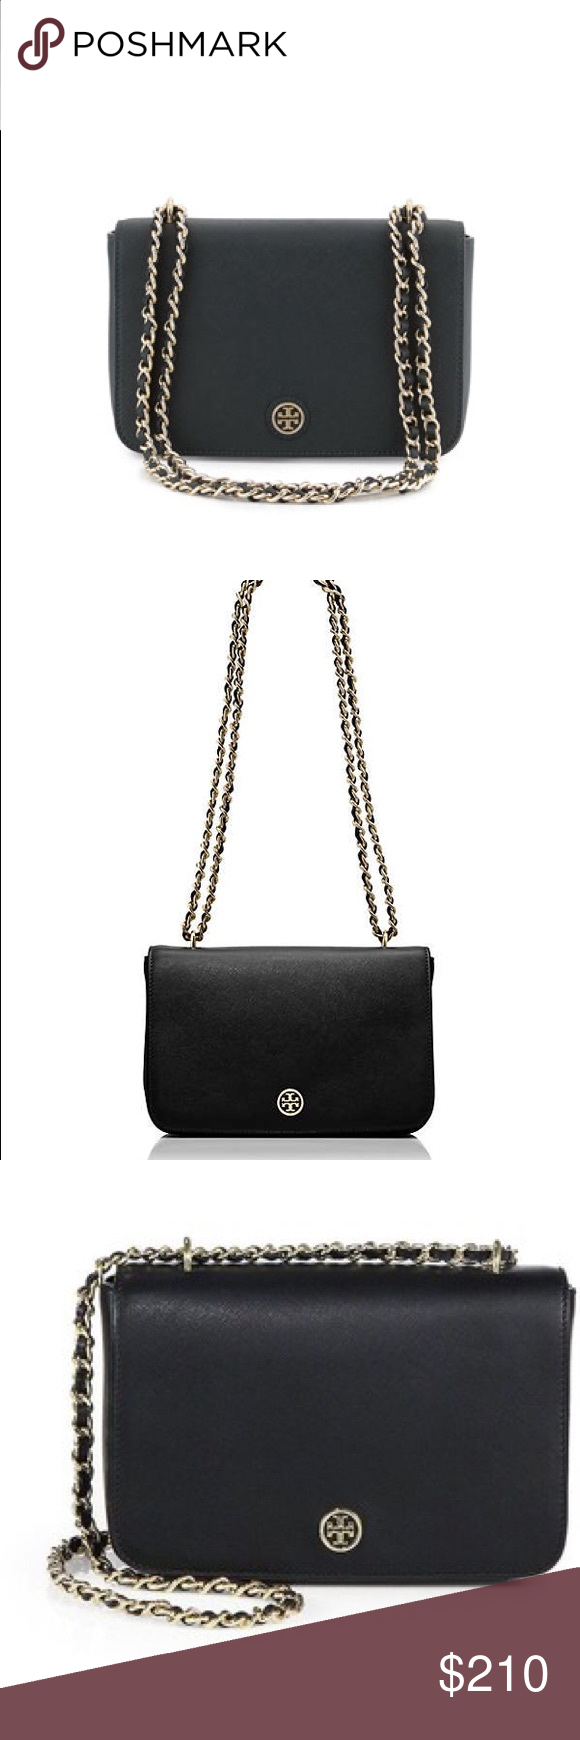 Tory Burch Robinson adjustable shoulder bag 100% authentic guaranteed!  Tory Burch Robinson adjustable shoulder bag.  The epitome of understated chic,  new Robinson adjustable shoulder bag is made of high quality, scratch resistent leather.  The chain strap is convertible so it can be worn doubled over the shoulder or long cross-body,  perfect for days on the go.  Perfect condition! Tory Burch Bags Crossbody Bags